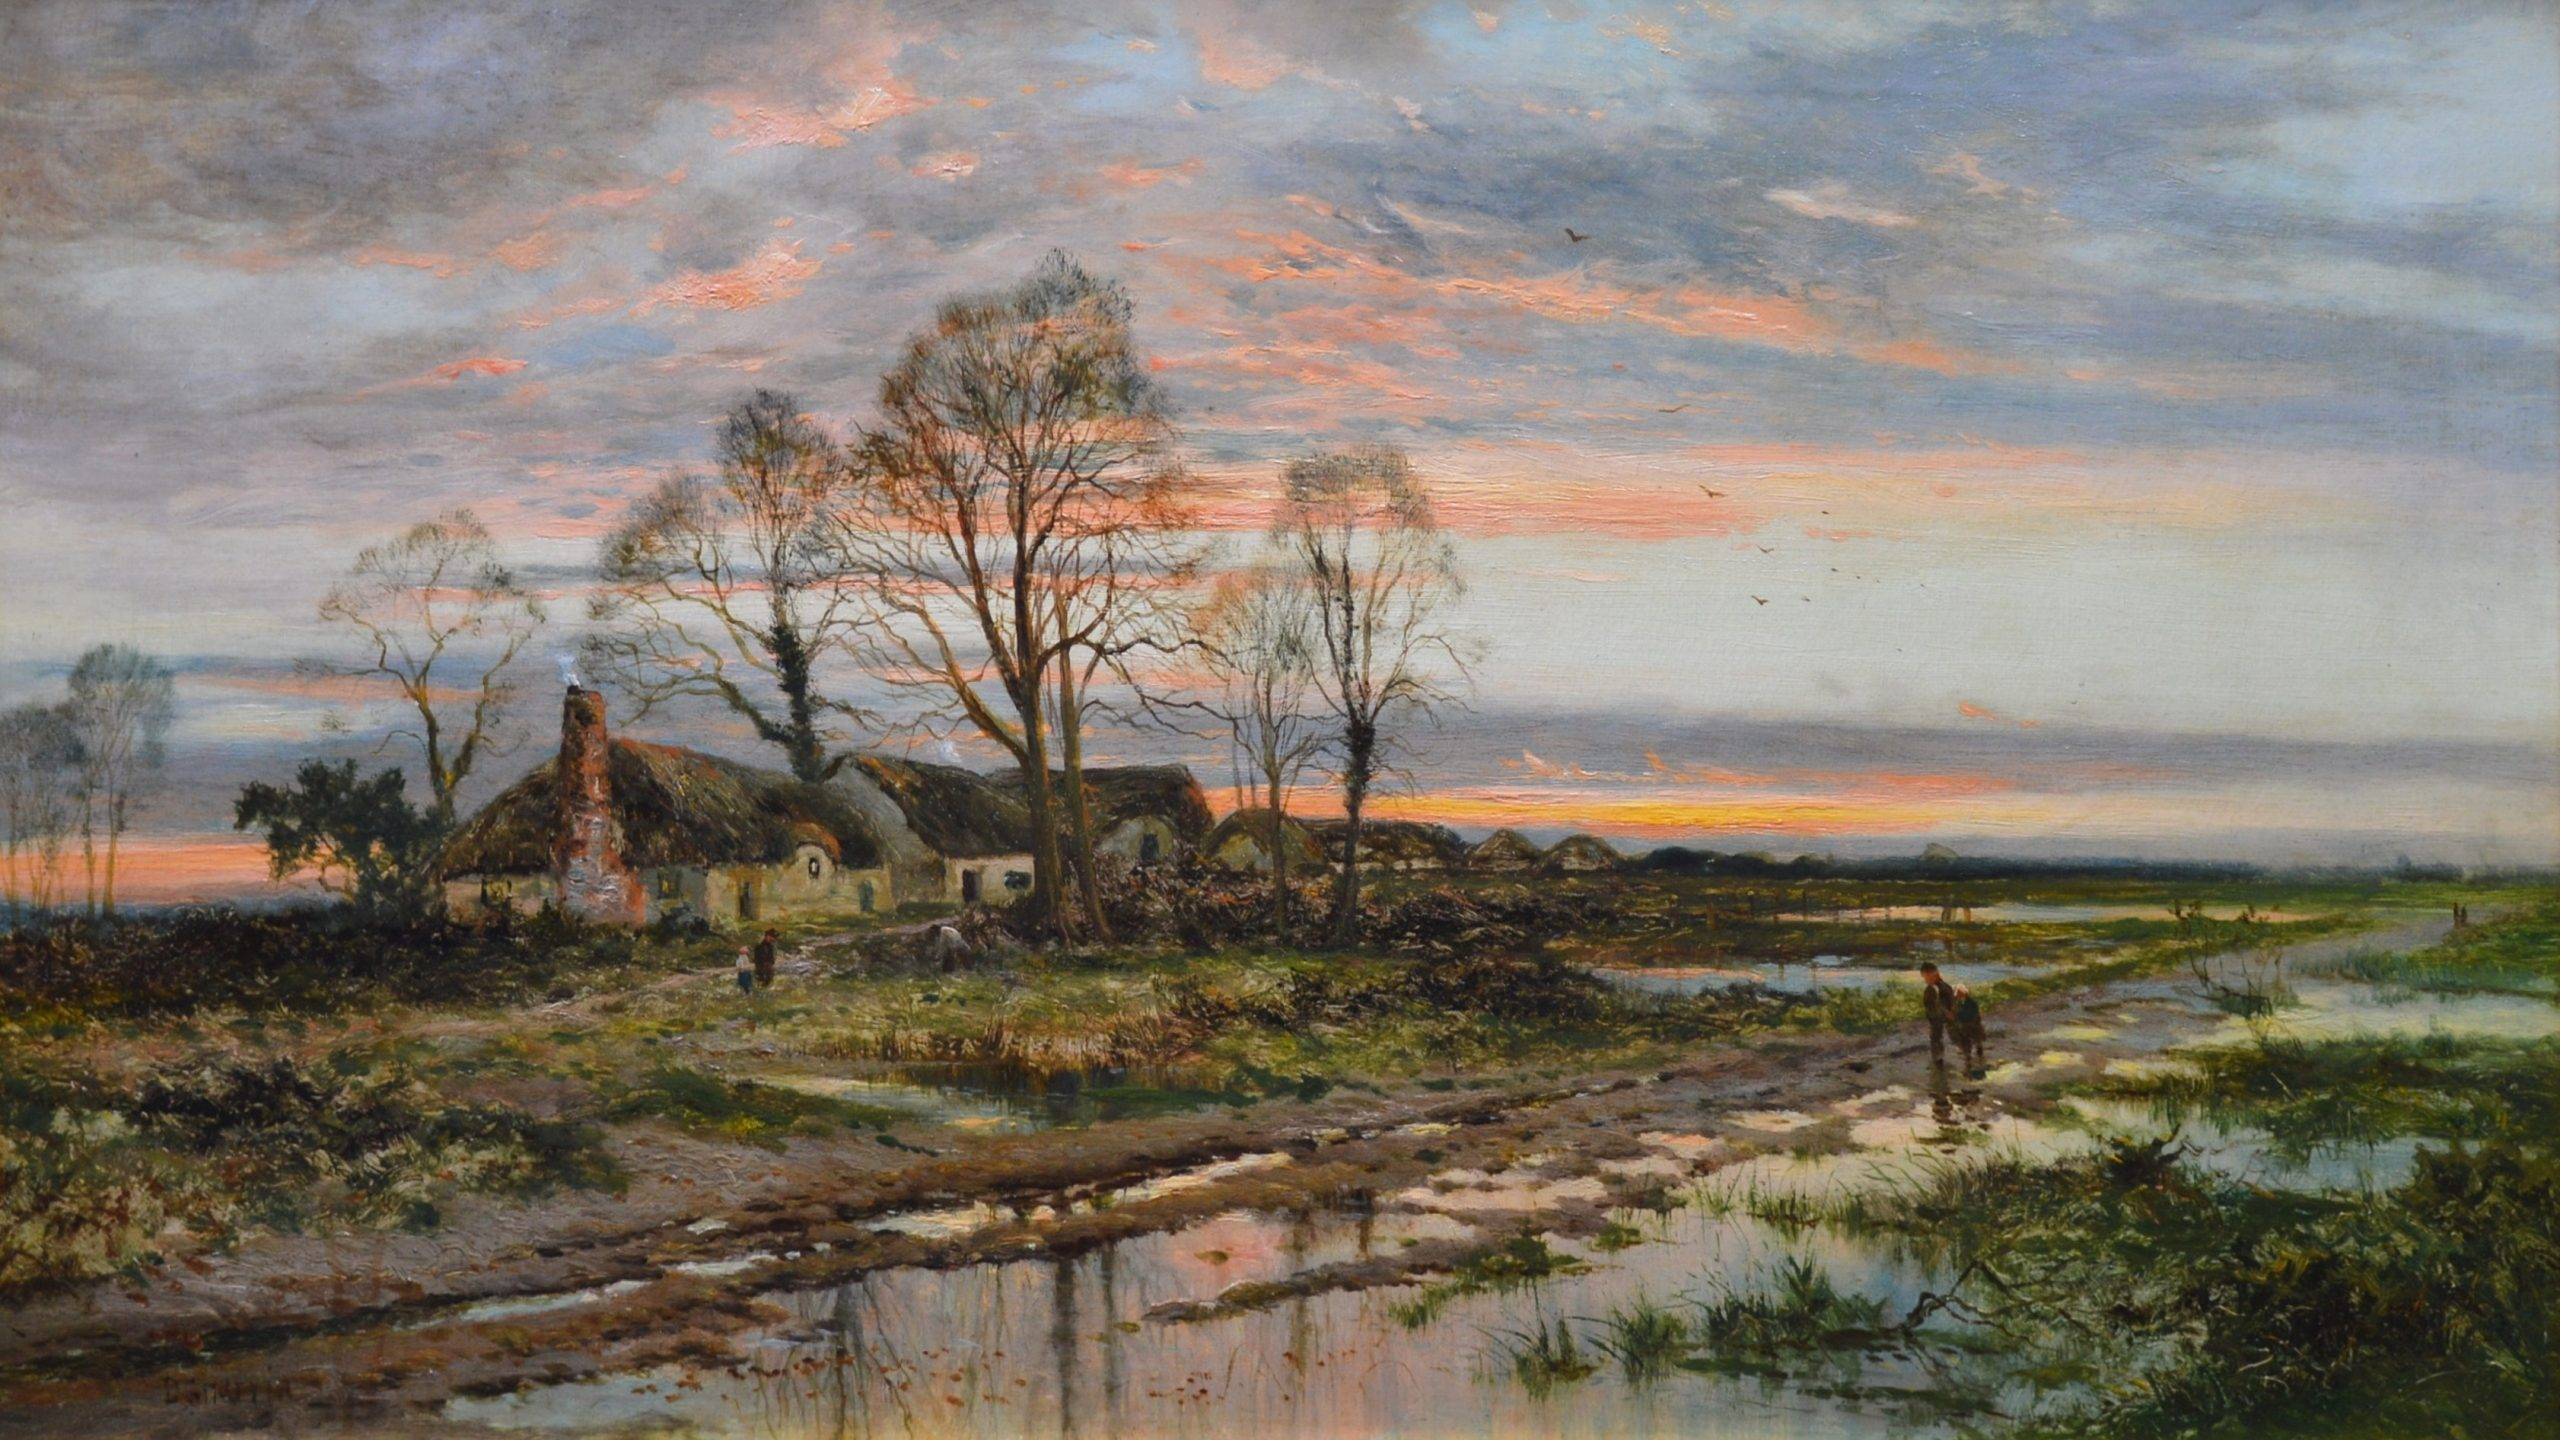 The Last Gleam - 19th Century English Sunset Landscape Oil Painting Image